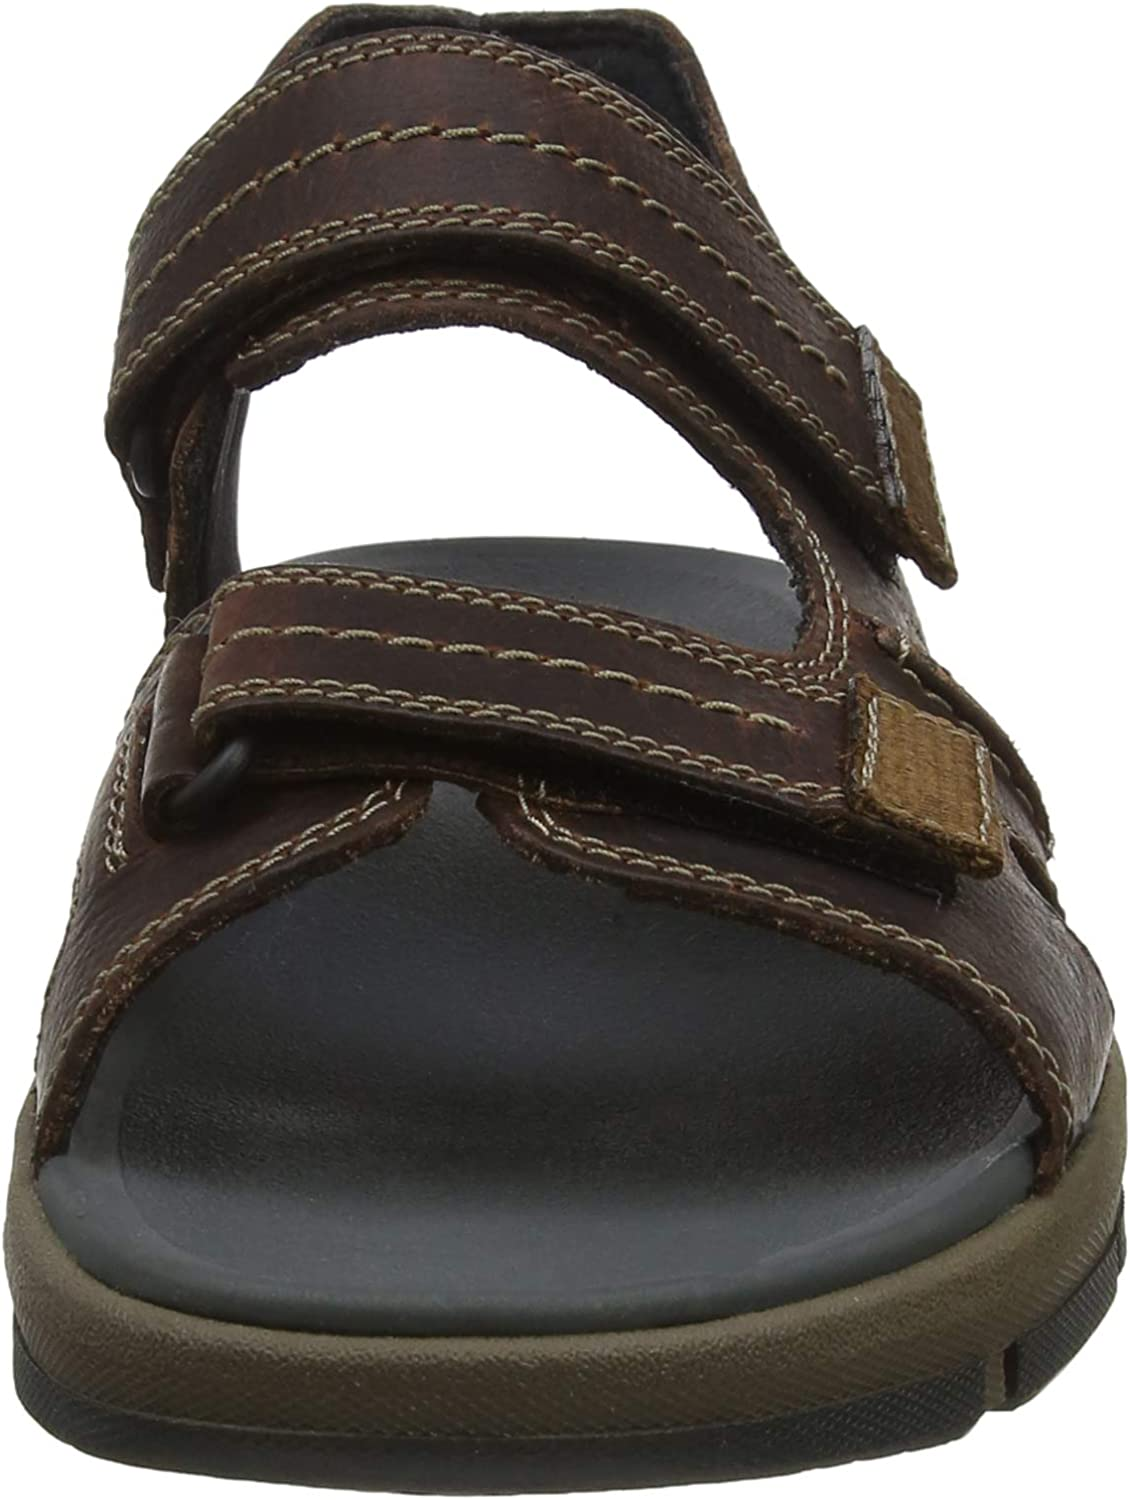 Clarks Herren UnBryman Part Sandalen, Braun (Brown Leather